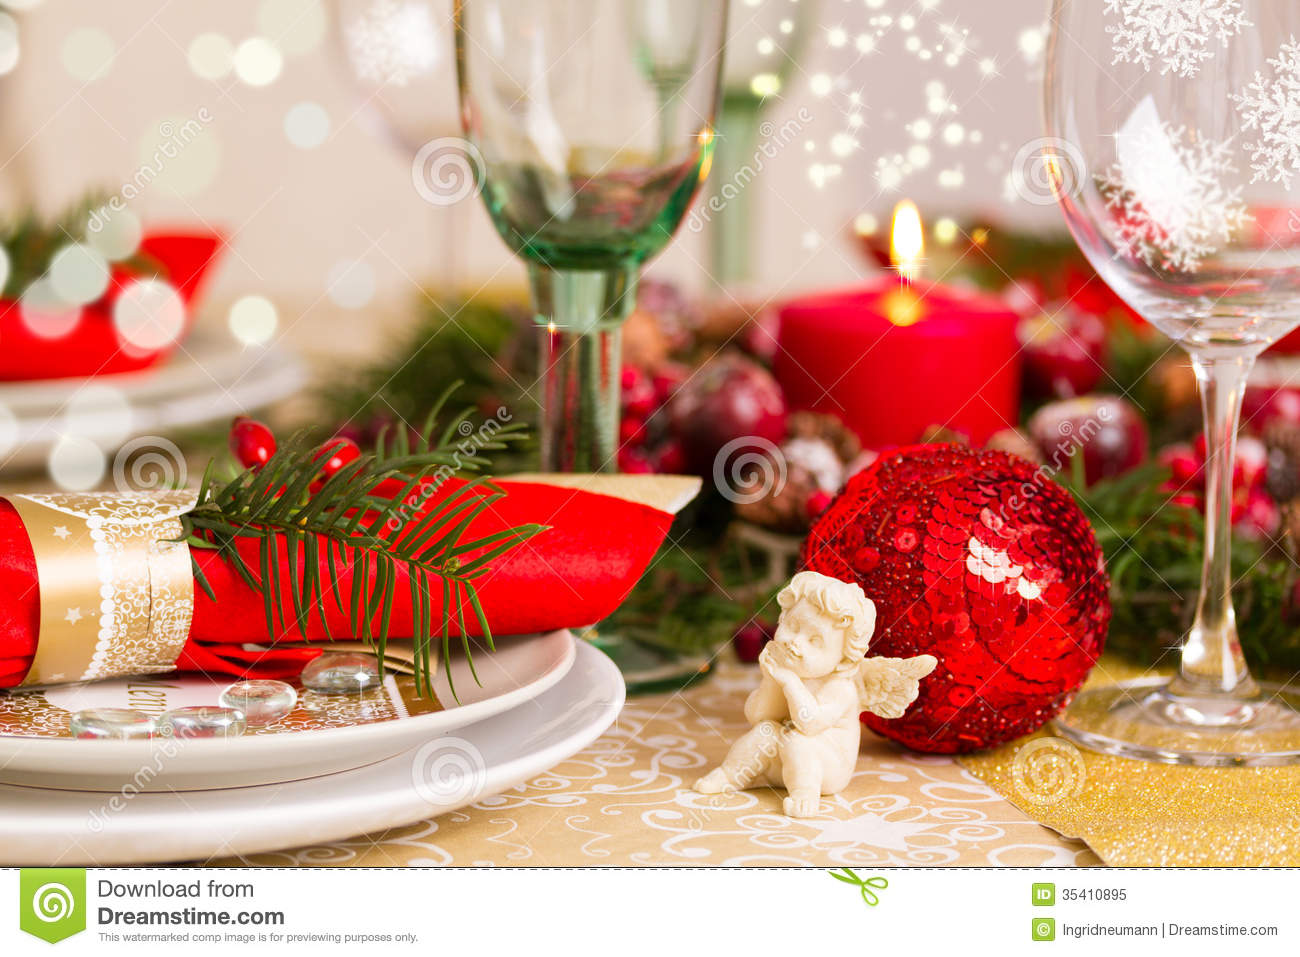 Christmas Table Setting With Holiday Decorations Royalty Free ...